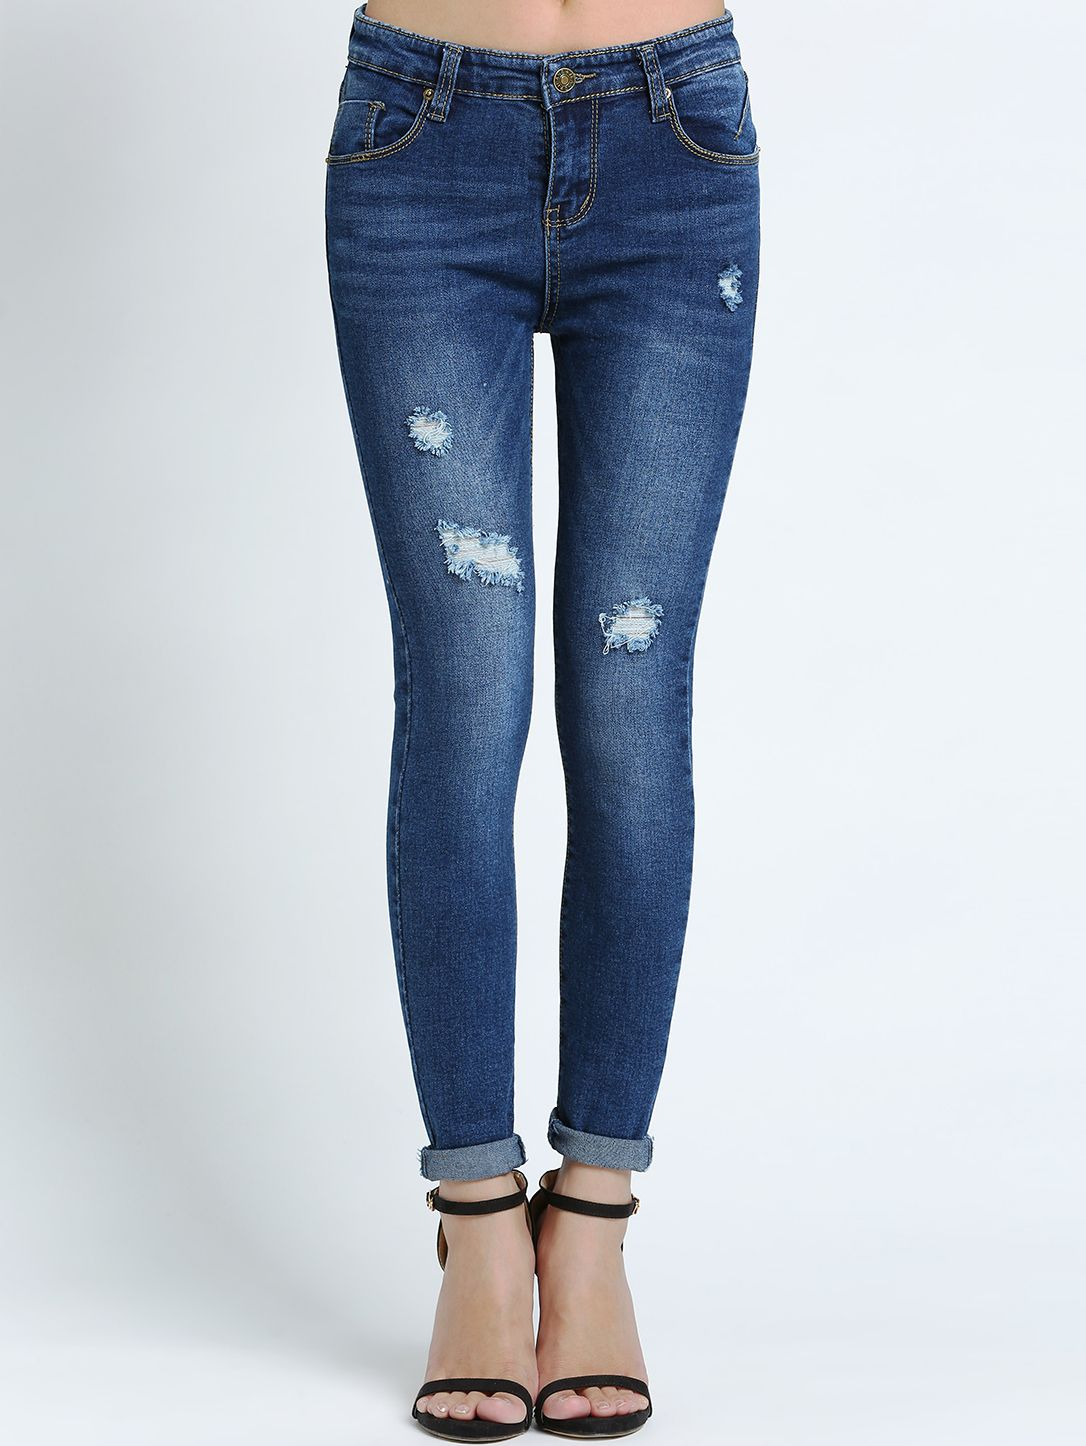 Photo of Blue Slim Bleached Ripped Denim Pant 21.29